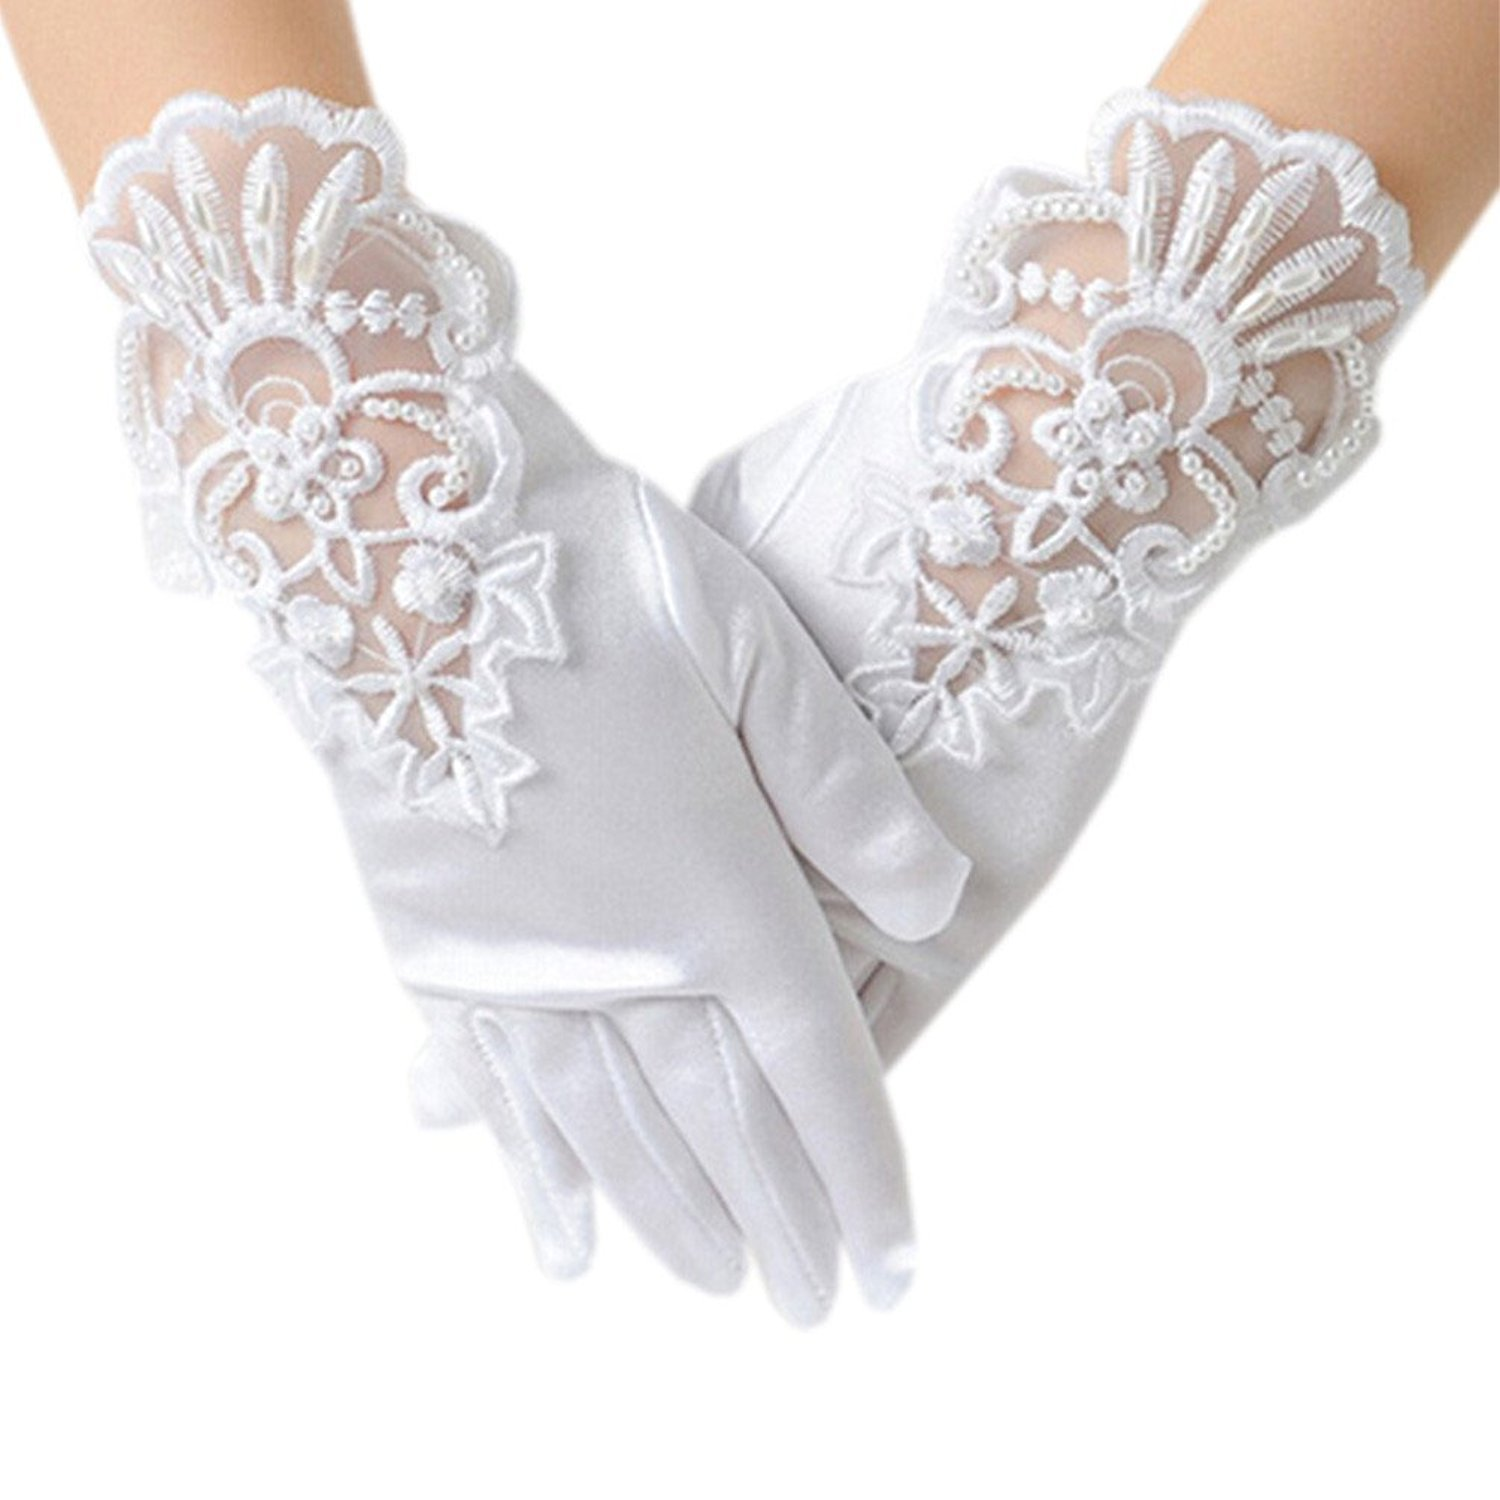 Jxsfly Flower Girls Short Gloves Lace Bowknot Gloves for Wedding Pageant Special Occasion (M, B)